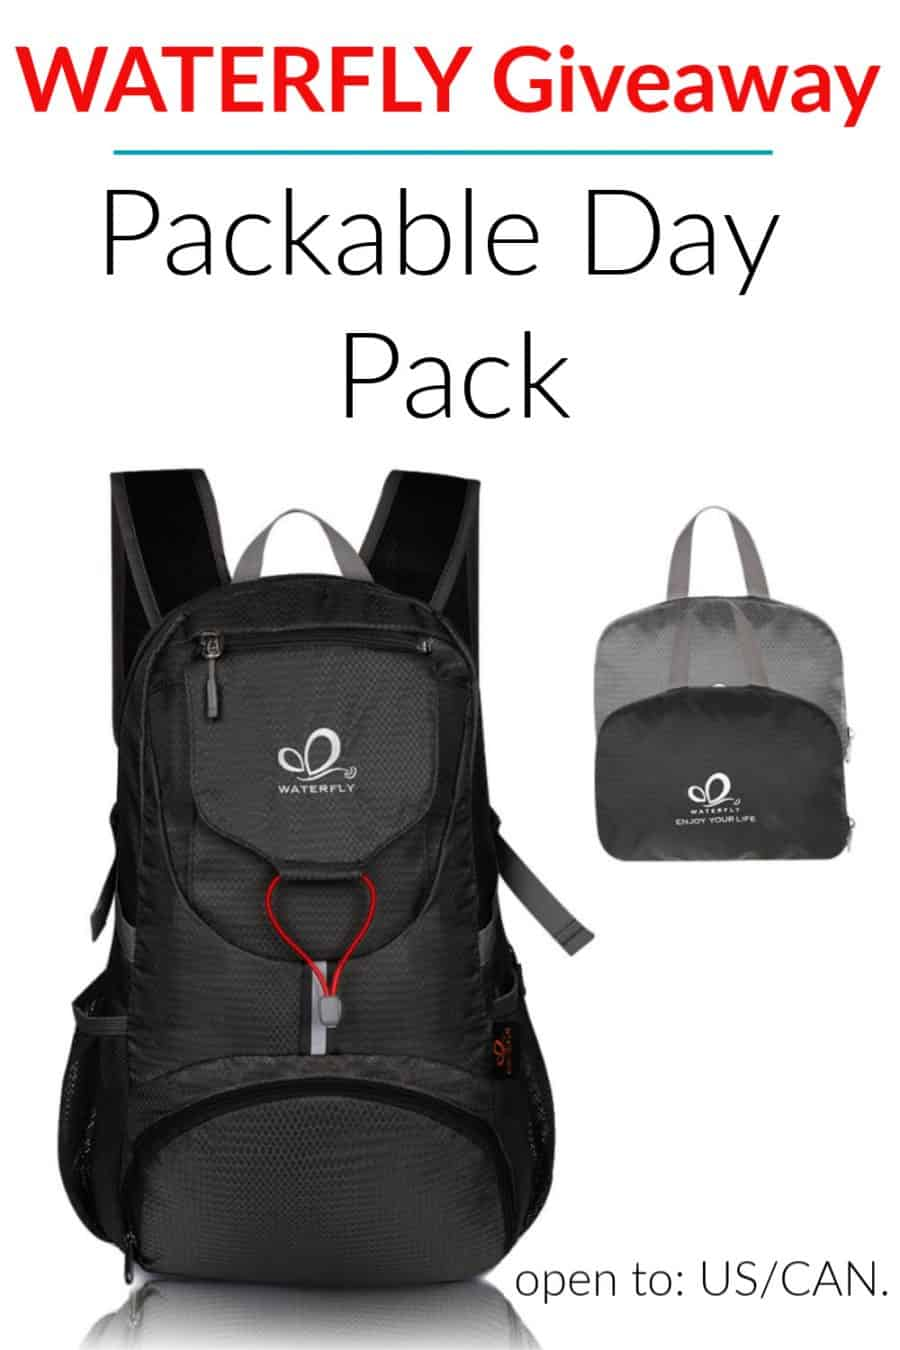 WATERFLY Packable Day Pack Giveaway 2